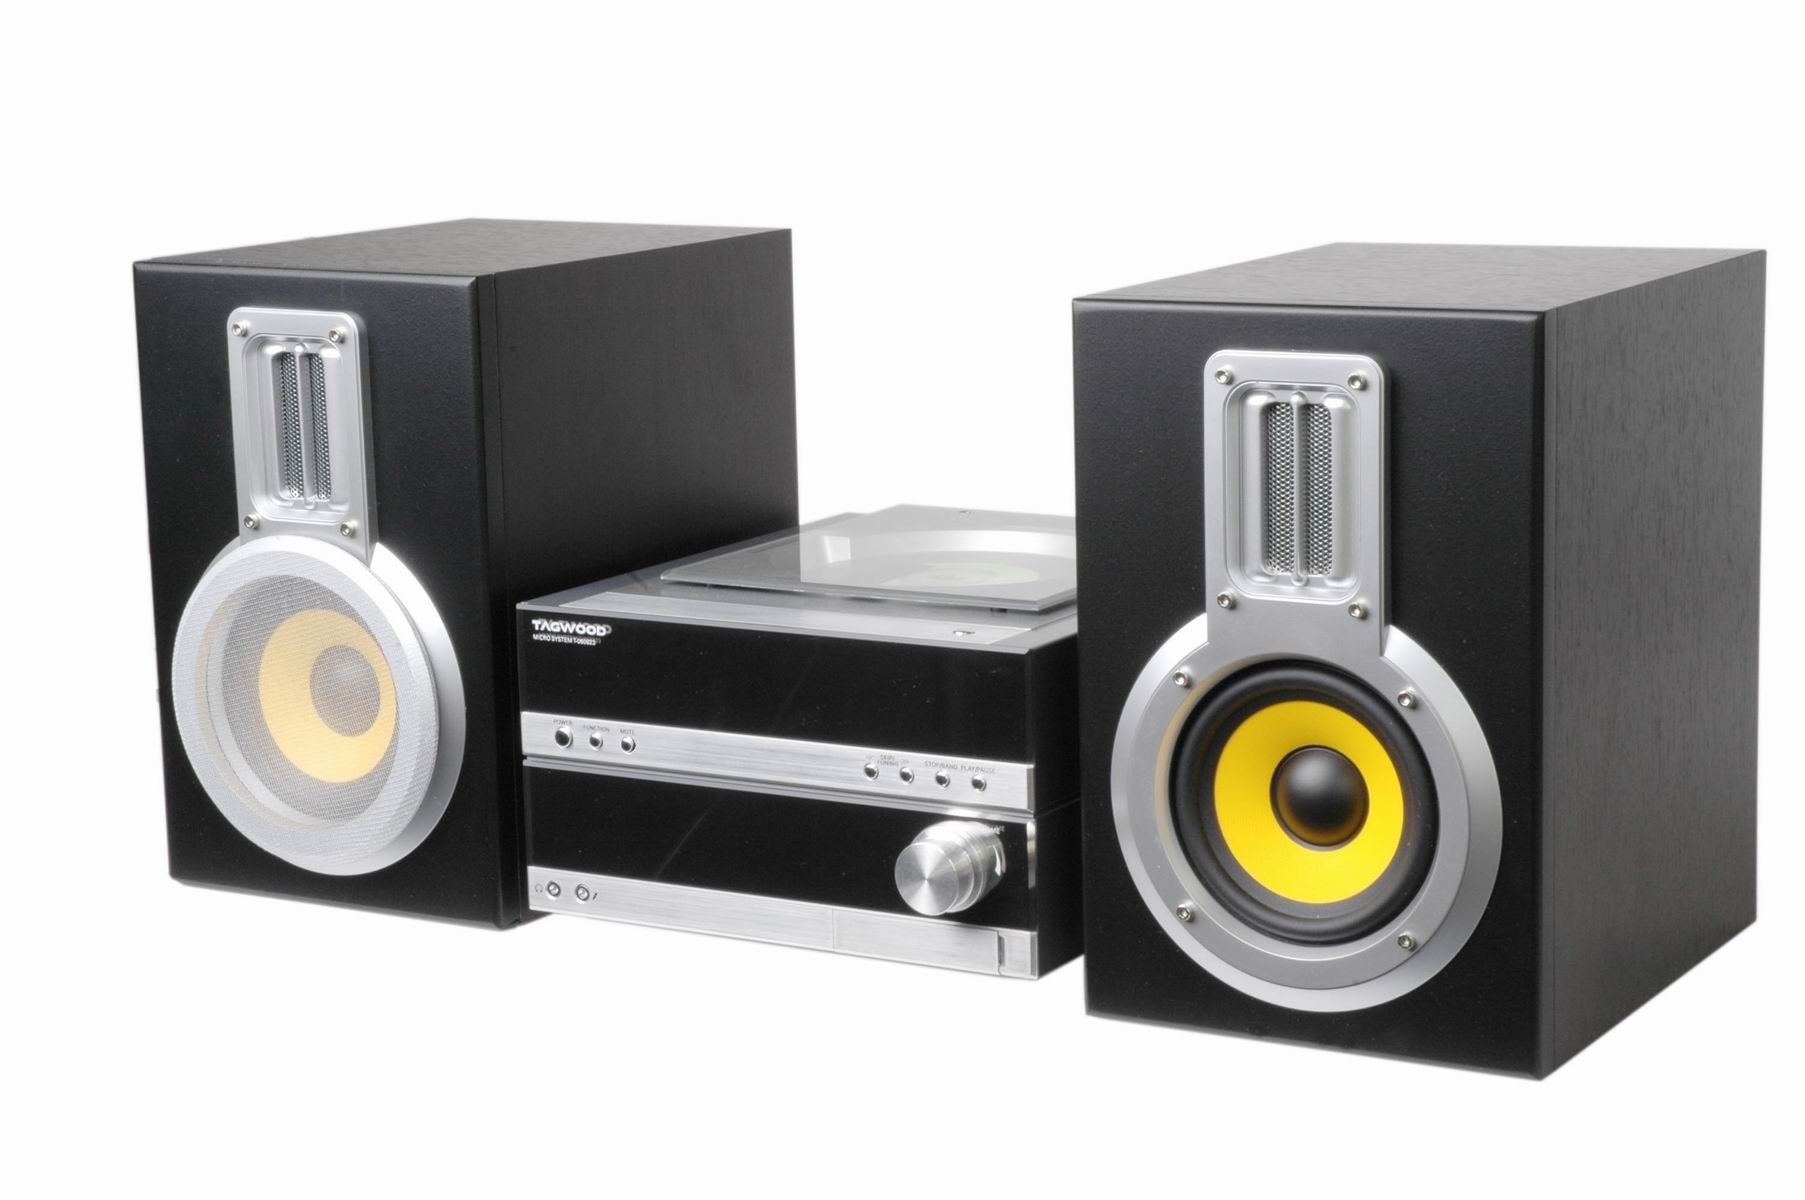 Mini Hifi Home Theatre System - Buy 2. 0 Mini Hifi Home Theatre ...